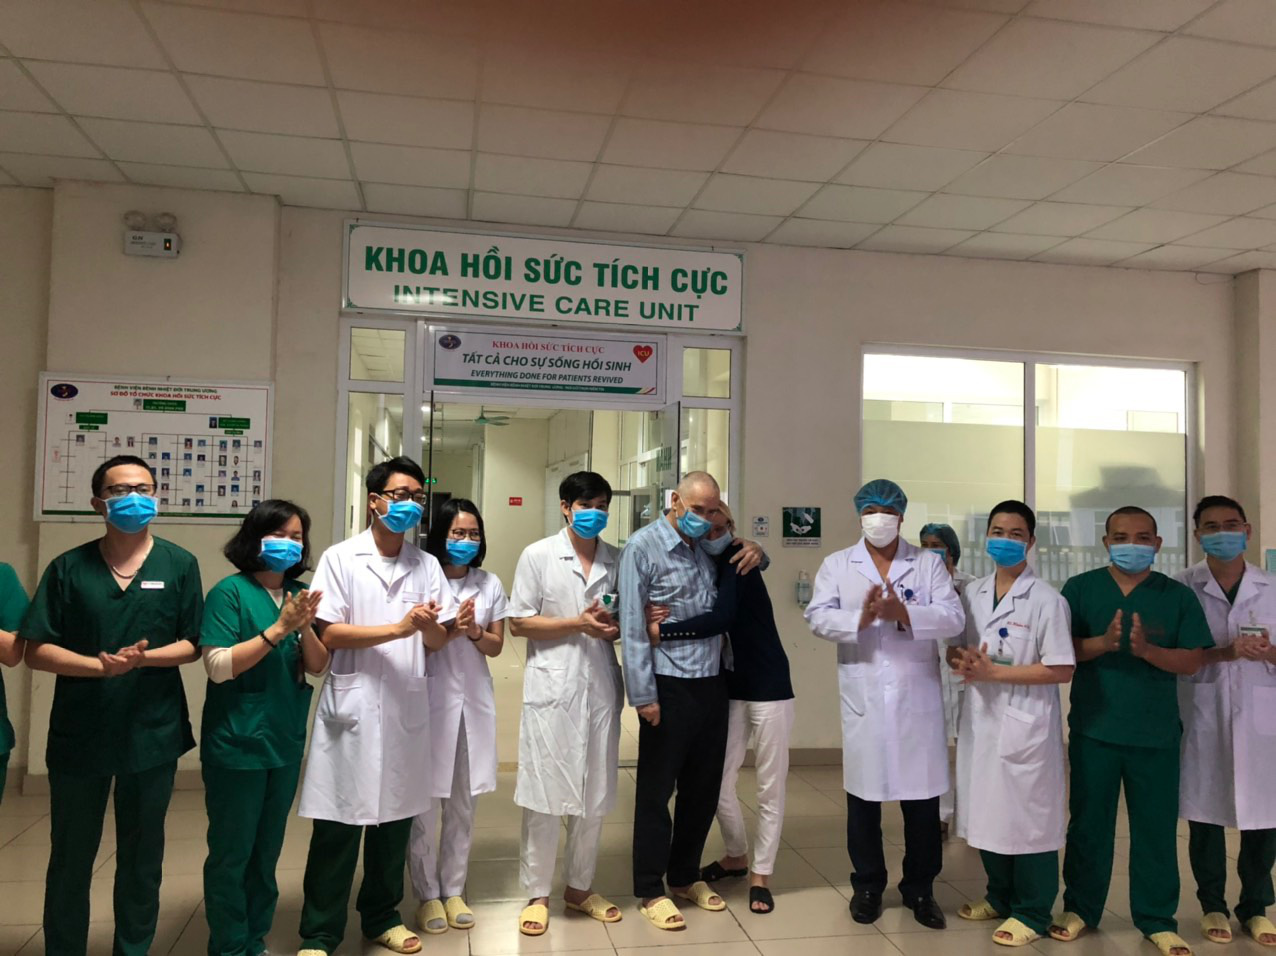 74-yo Briton recovers from critical condition after COVID-19 treatment in Hanoi